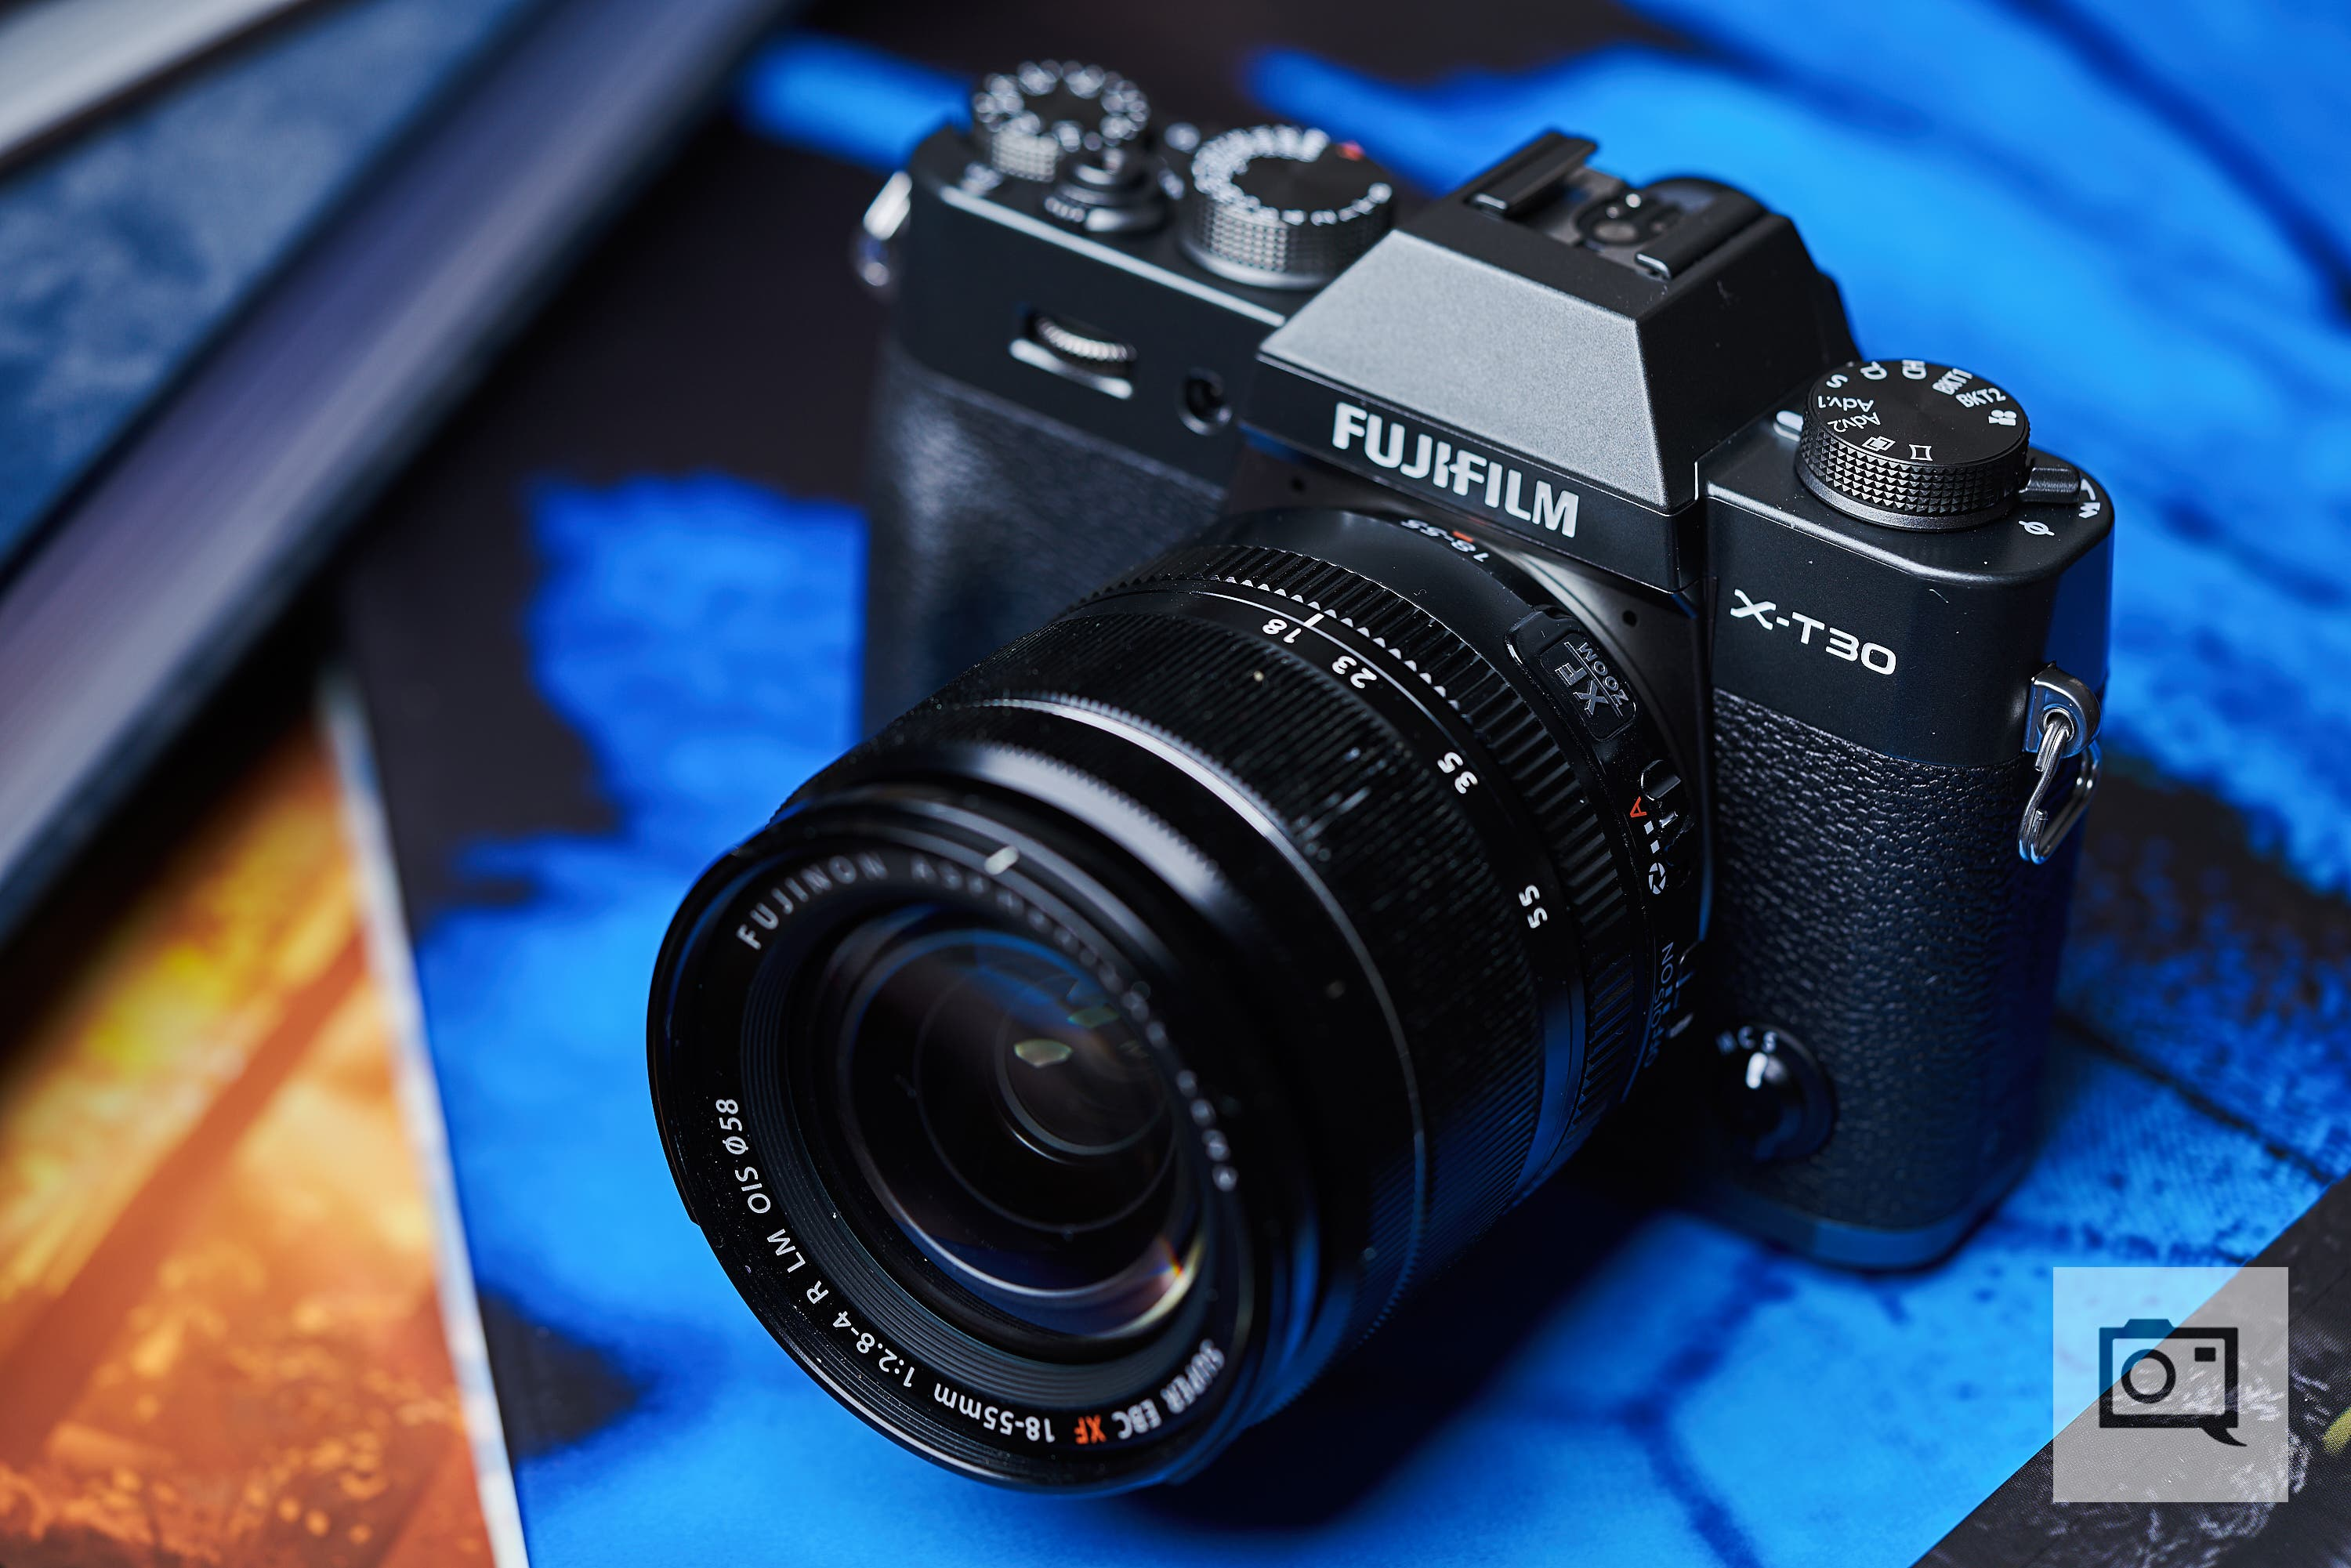 First Impressions: Fujifilm X-T30 (Look What They Did to the JoyStick)